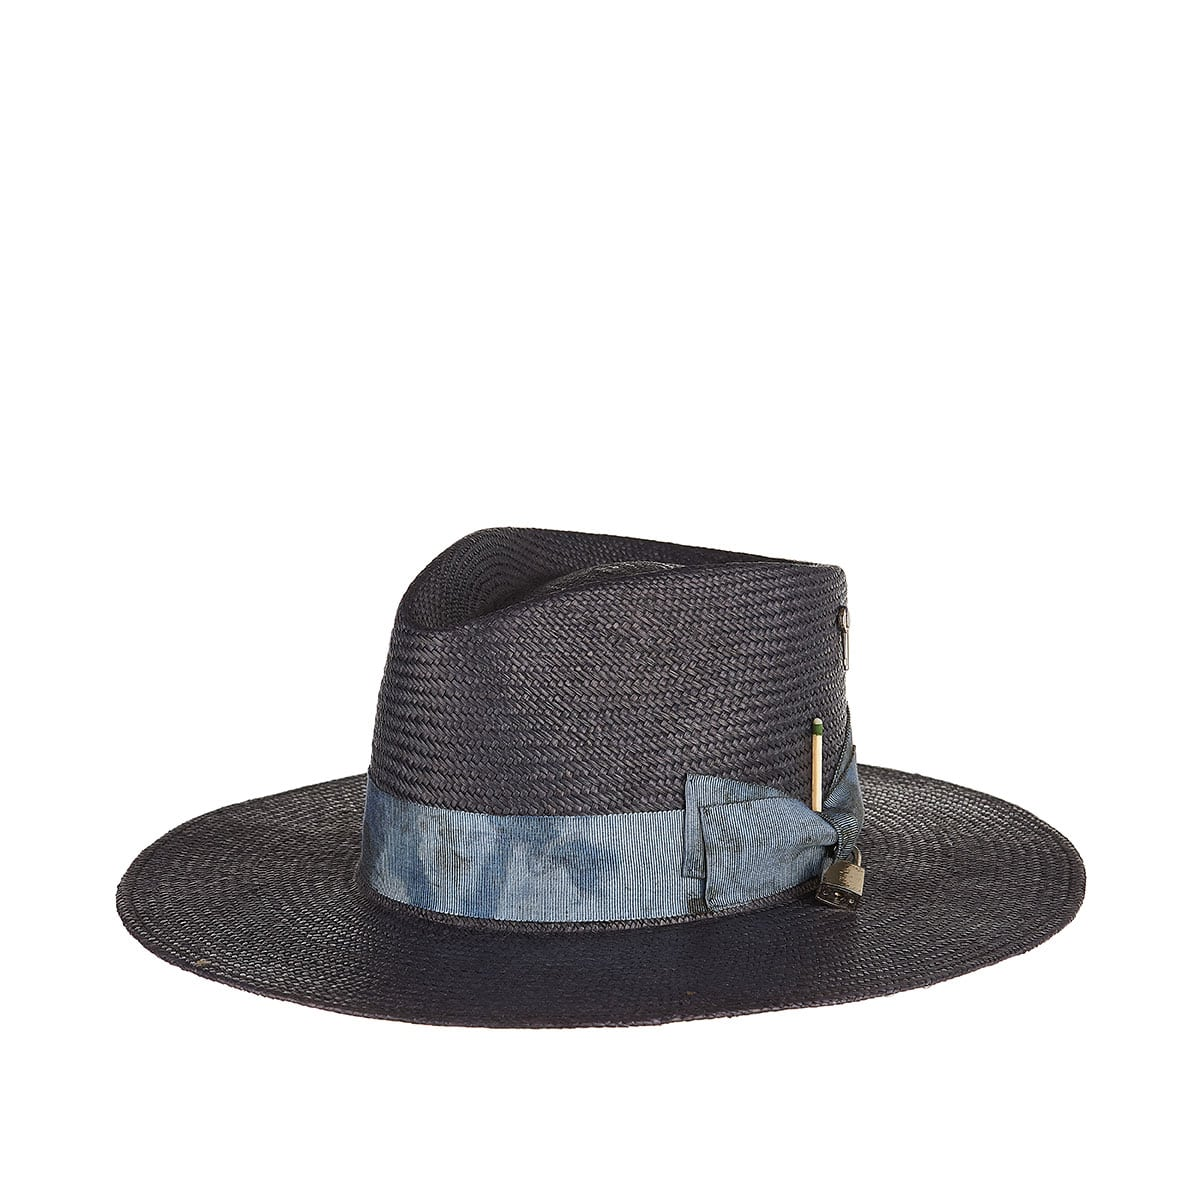 Cles straw fedora hat